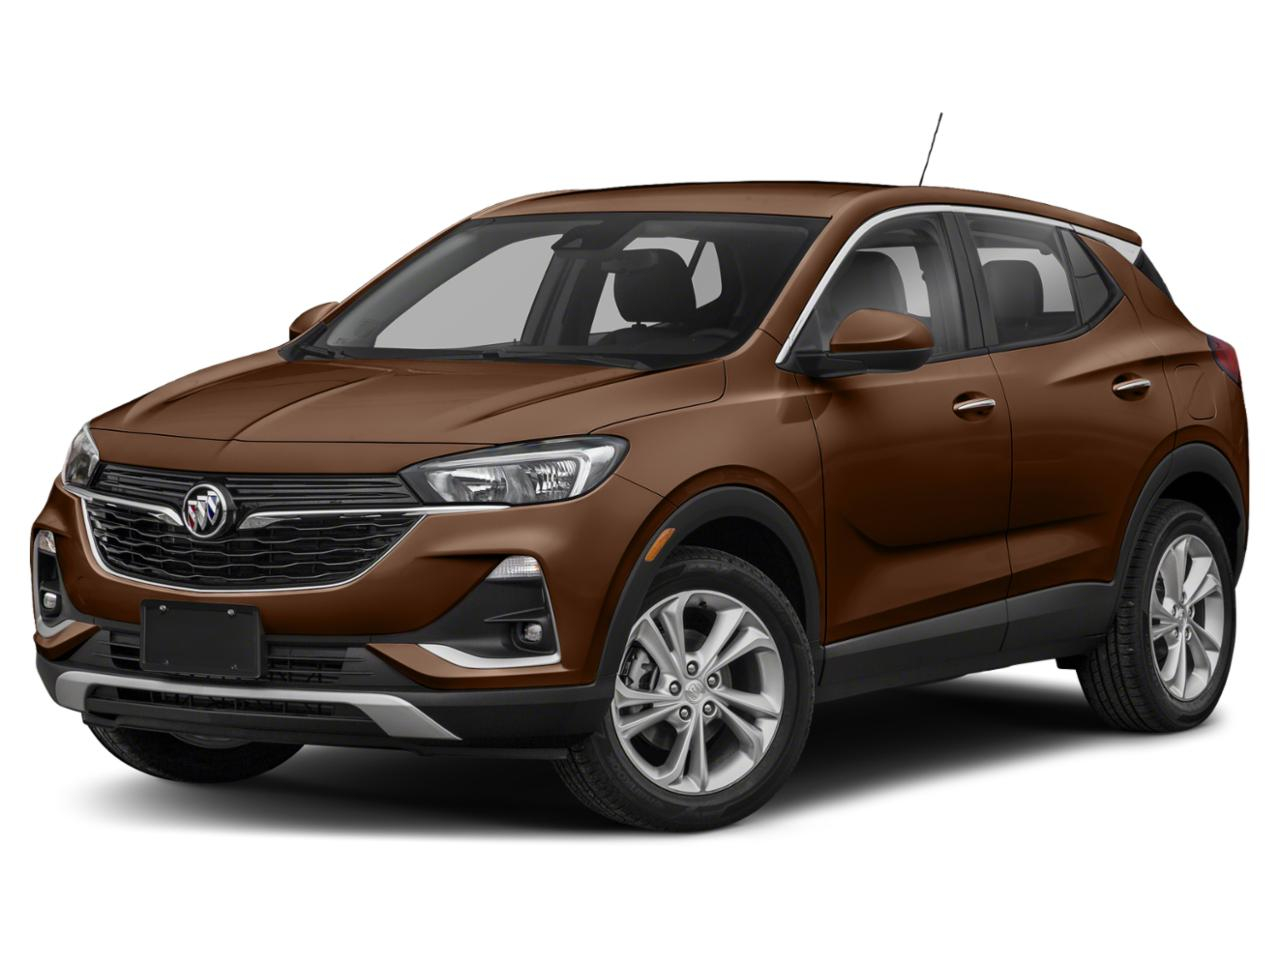 New 2020 Buick Encore Gx For Sale At Griffin Buick Gmc New 2022 Buick Encore Lease Specials, Trim Levels, Mpg